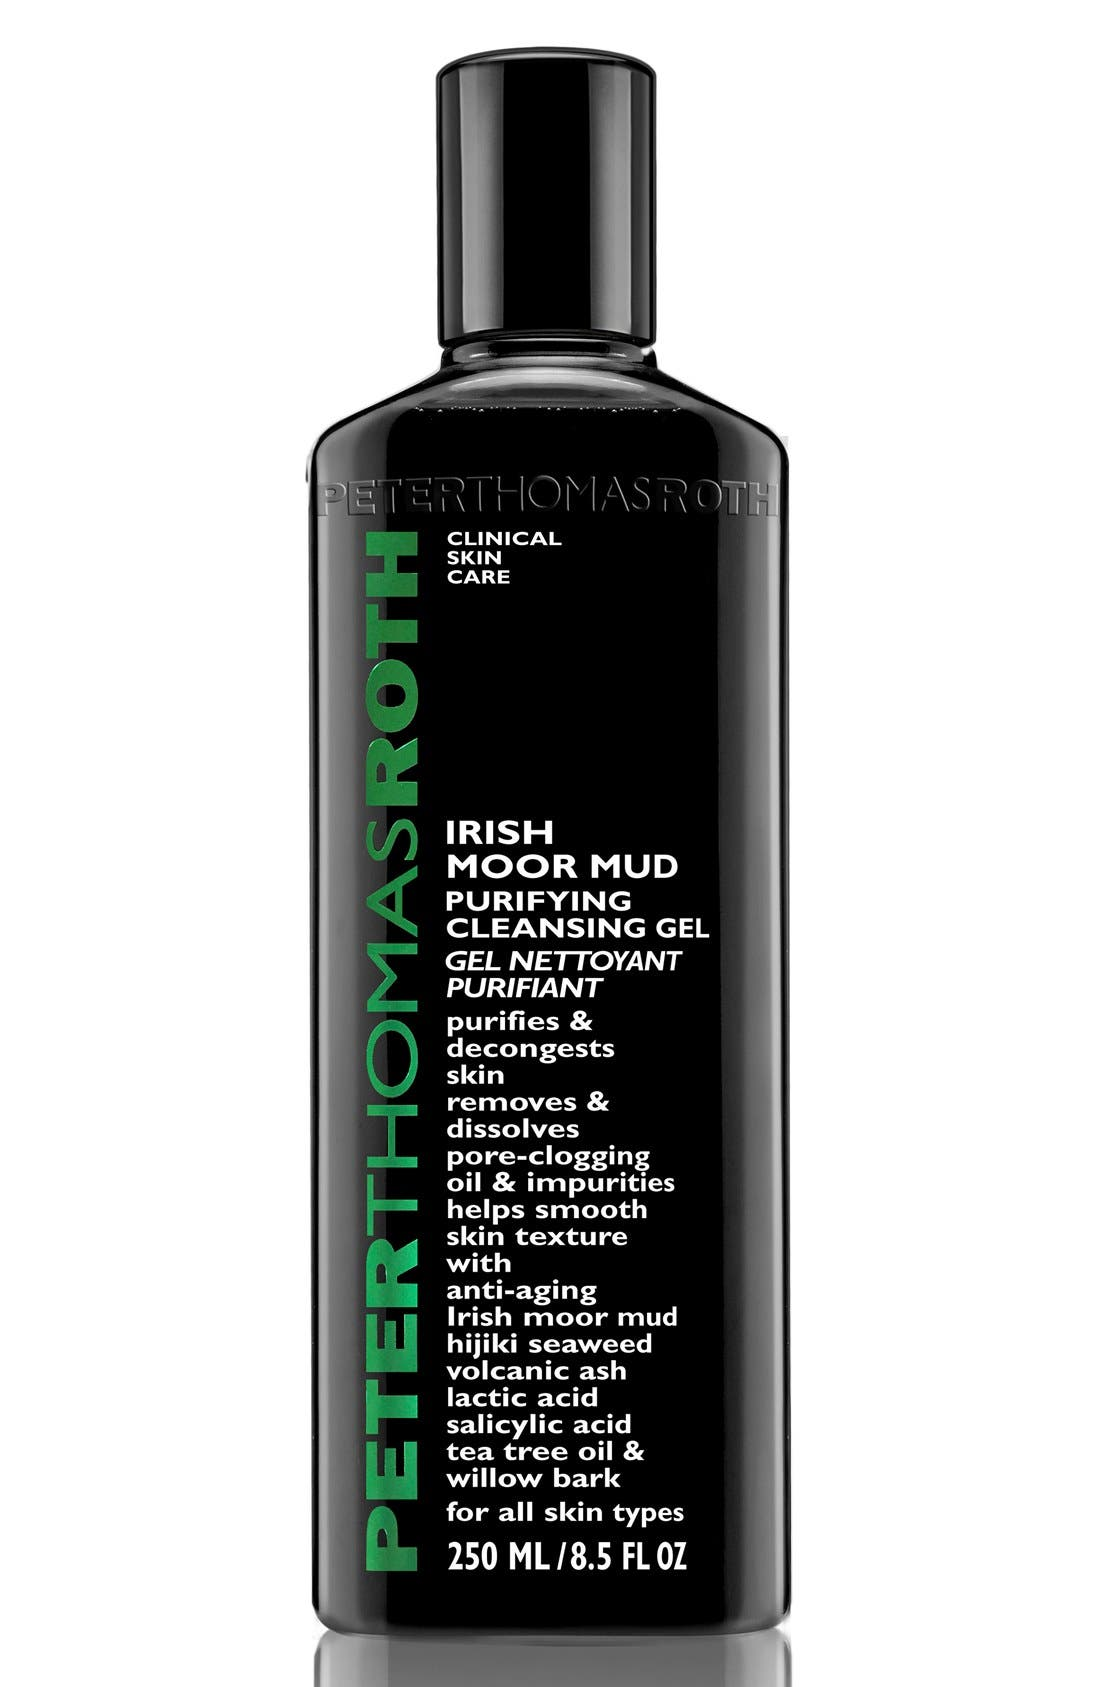 Peter Thomas Roth 'Irish Moor Mud' Purifying Cleansing Gel